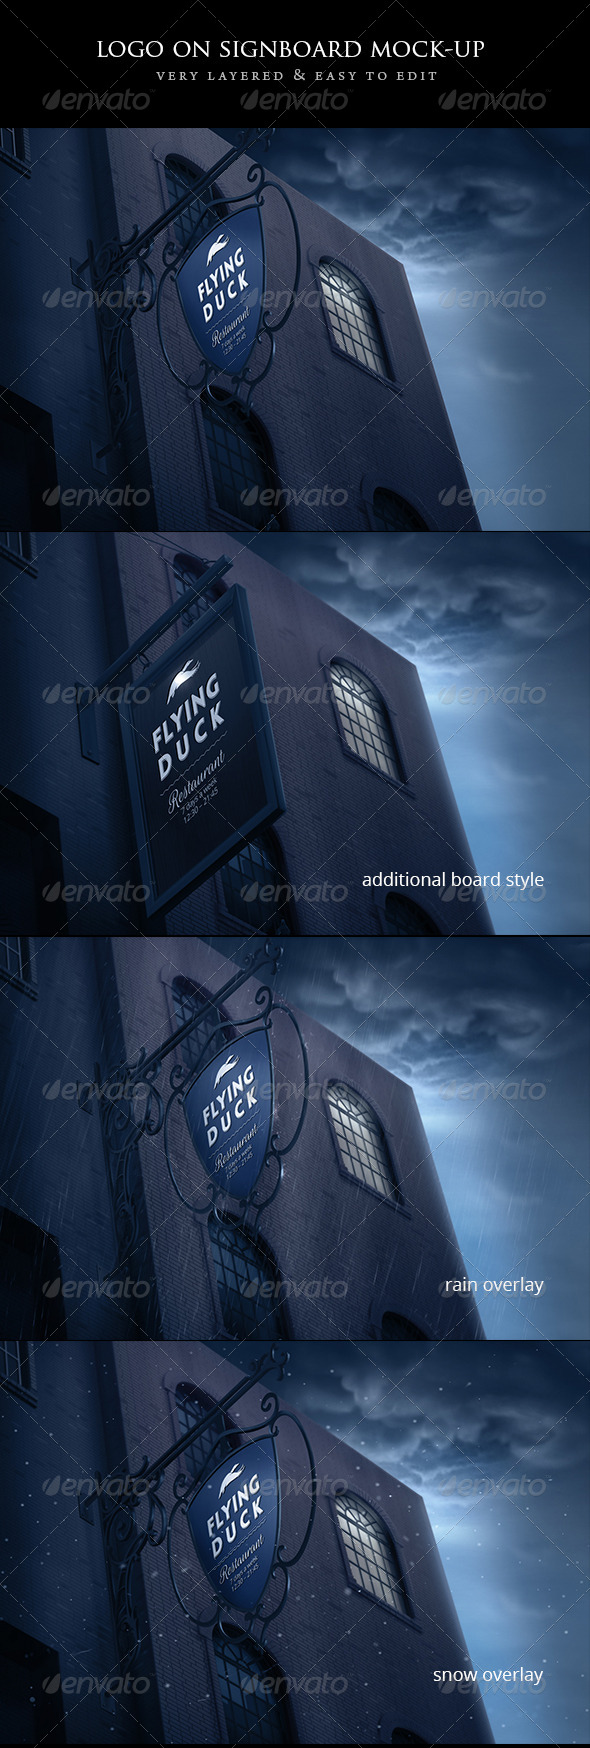 GraphicRiver Logo on Vintage Signboard Mock-up 6795246